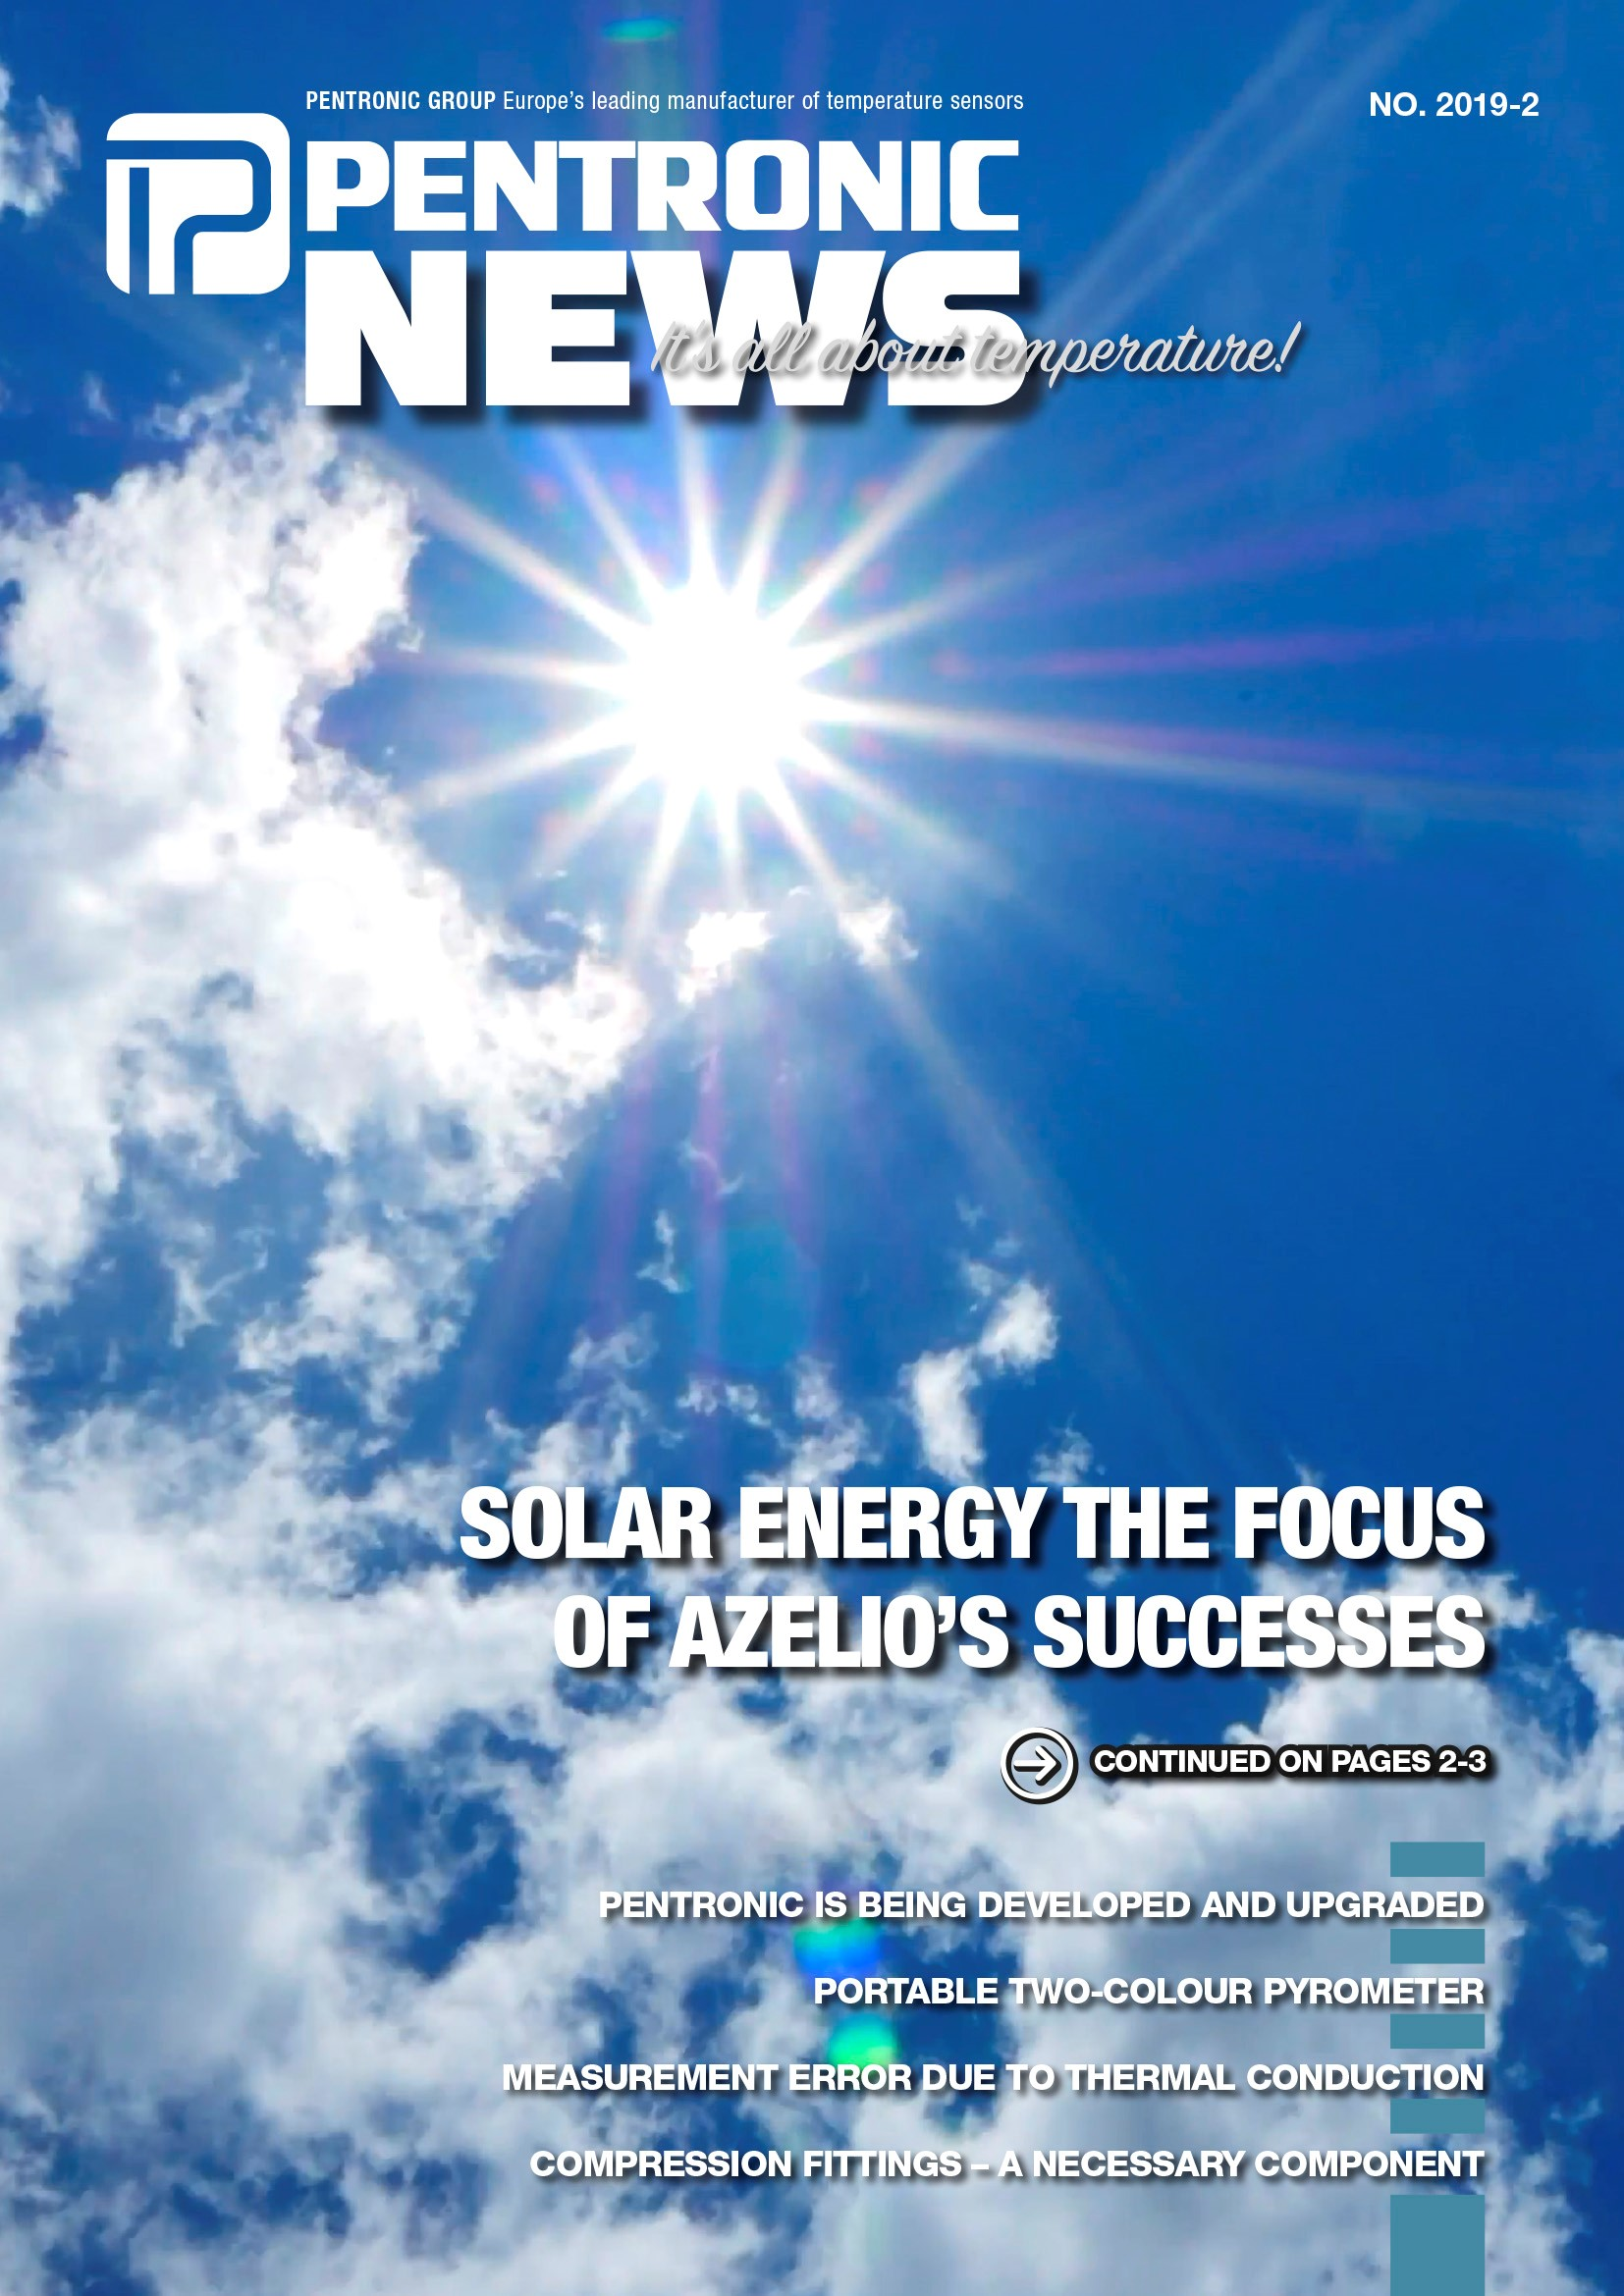 Pentronic News 2019-2 with an article about Azelio that develops plants for converting solar energy into electricity